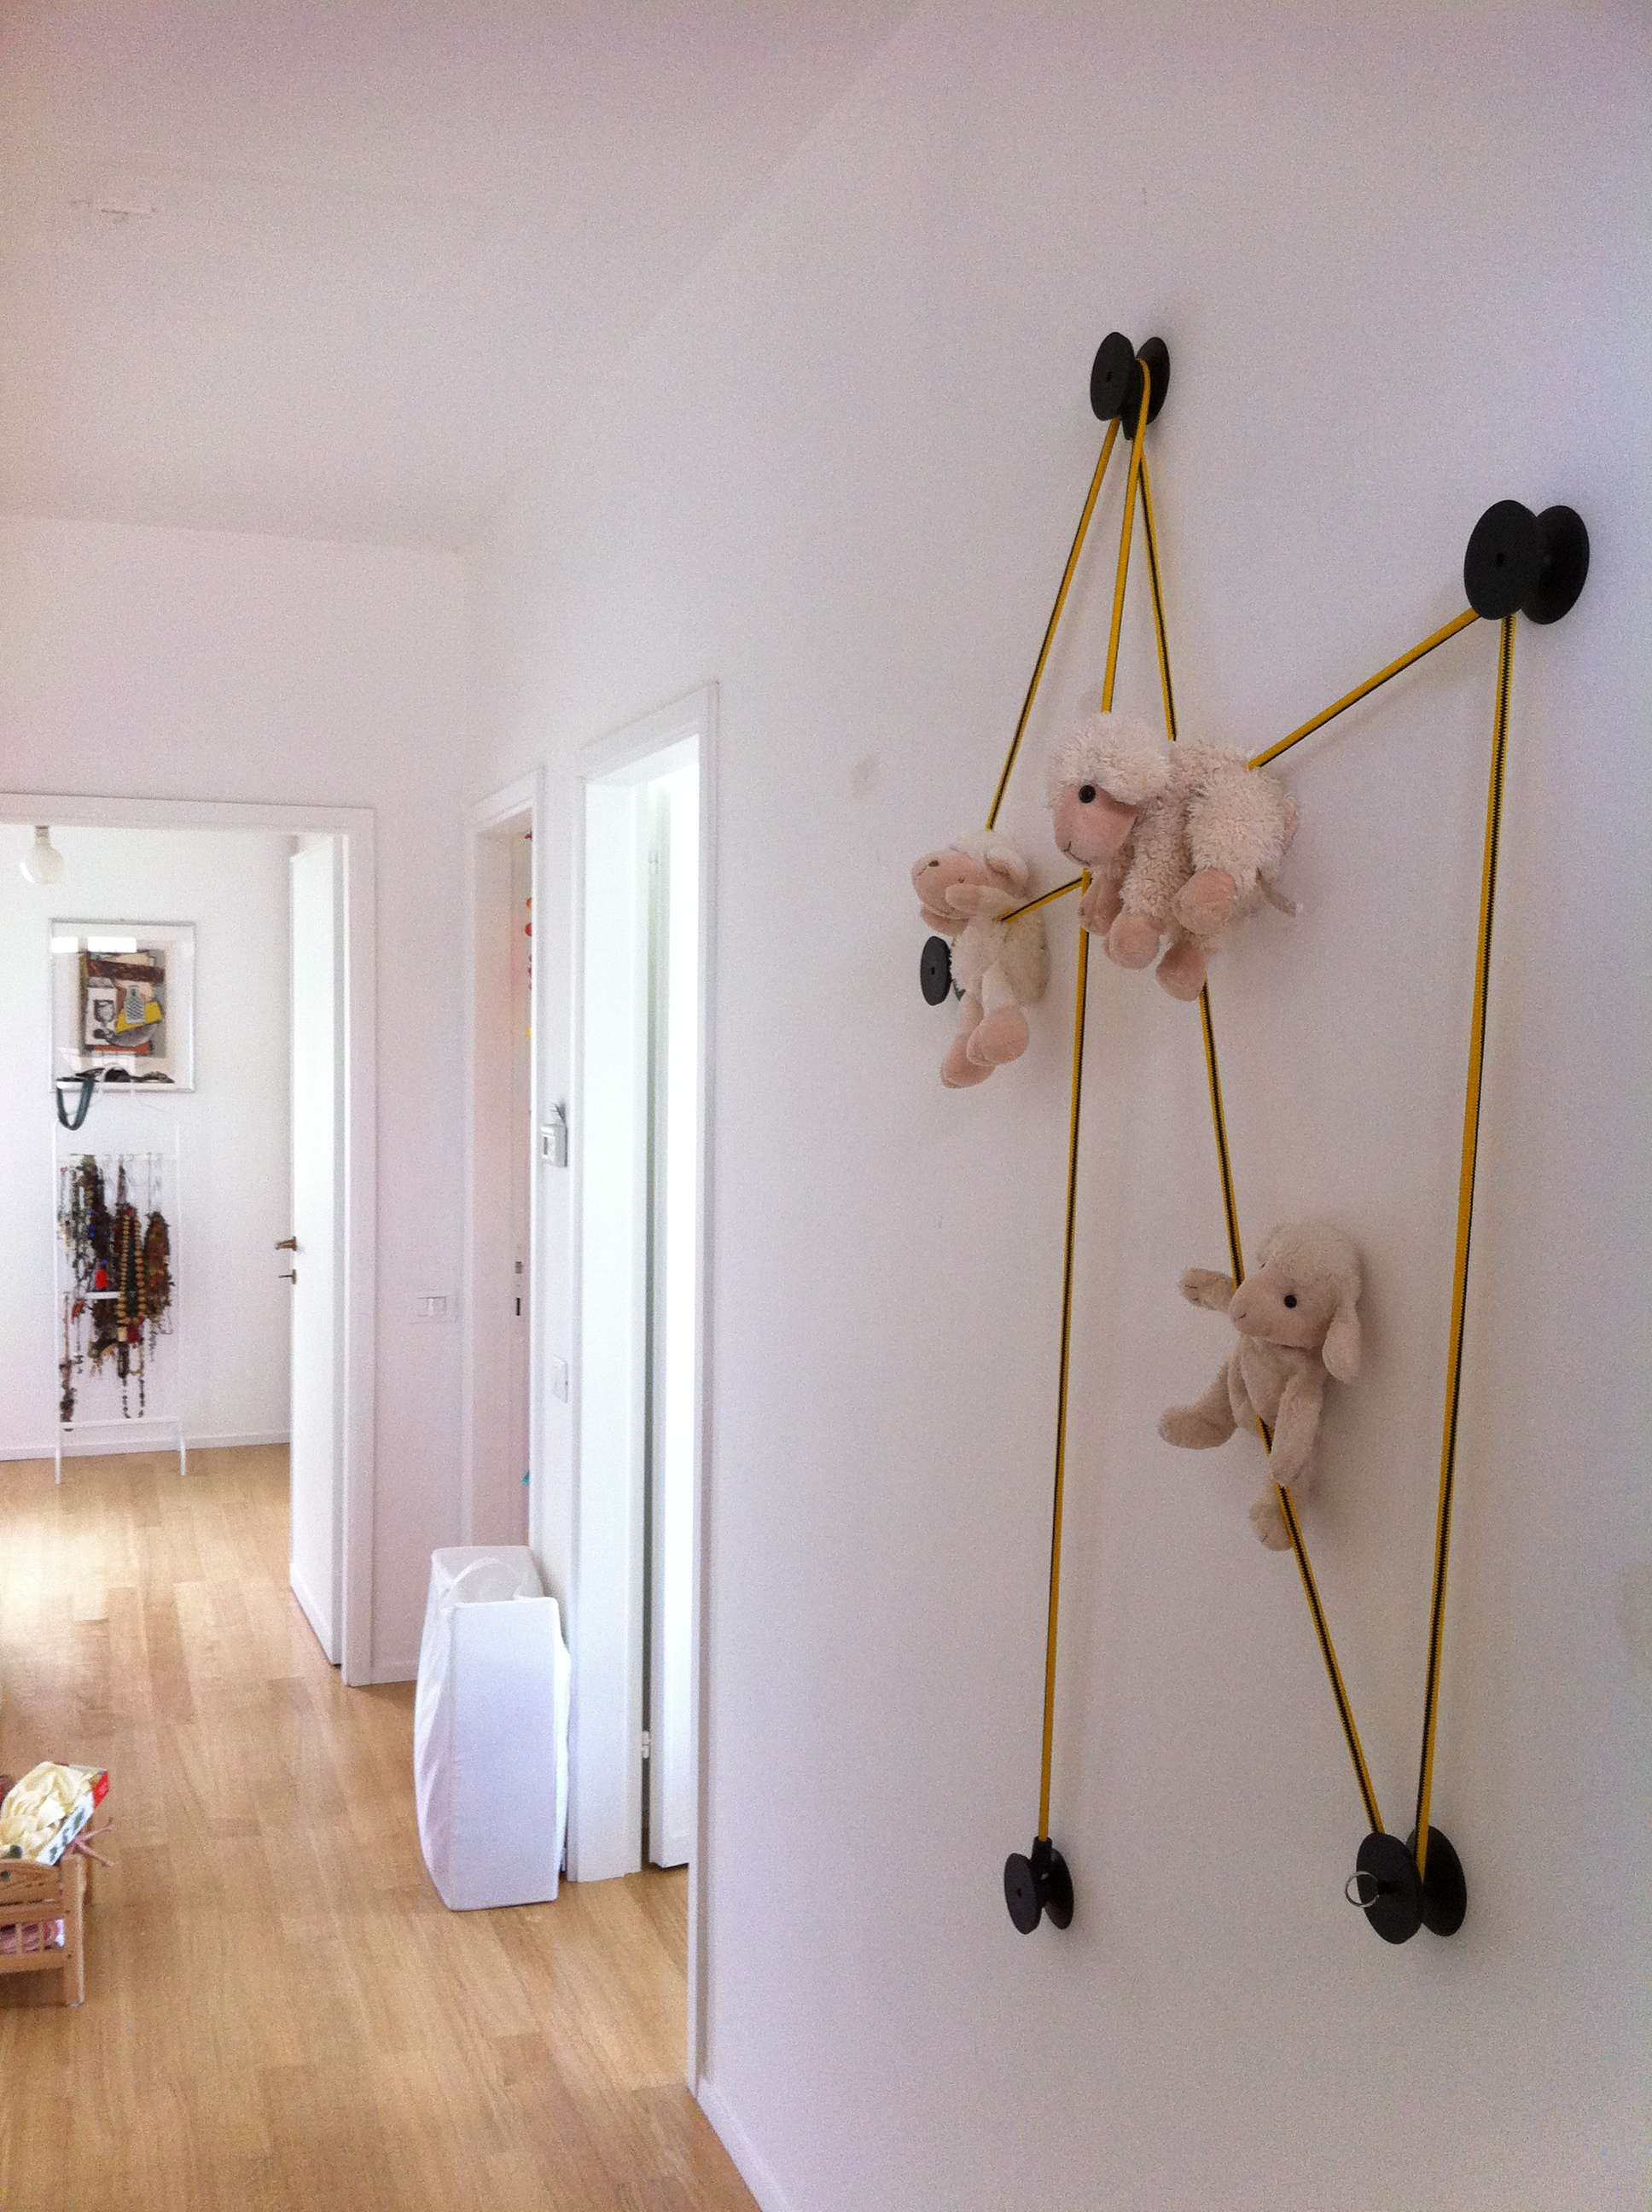 tit black coat hook in pvc and keychain with sheeps on the elastic rope